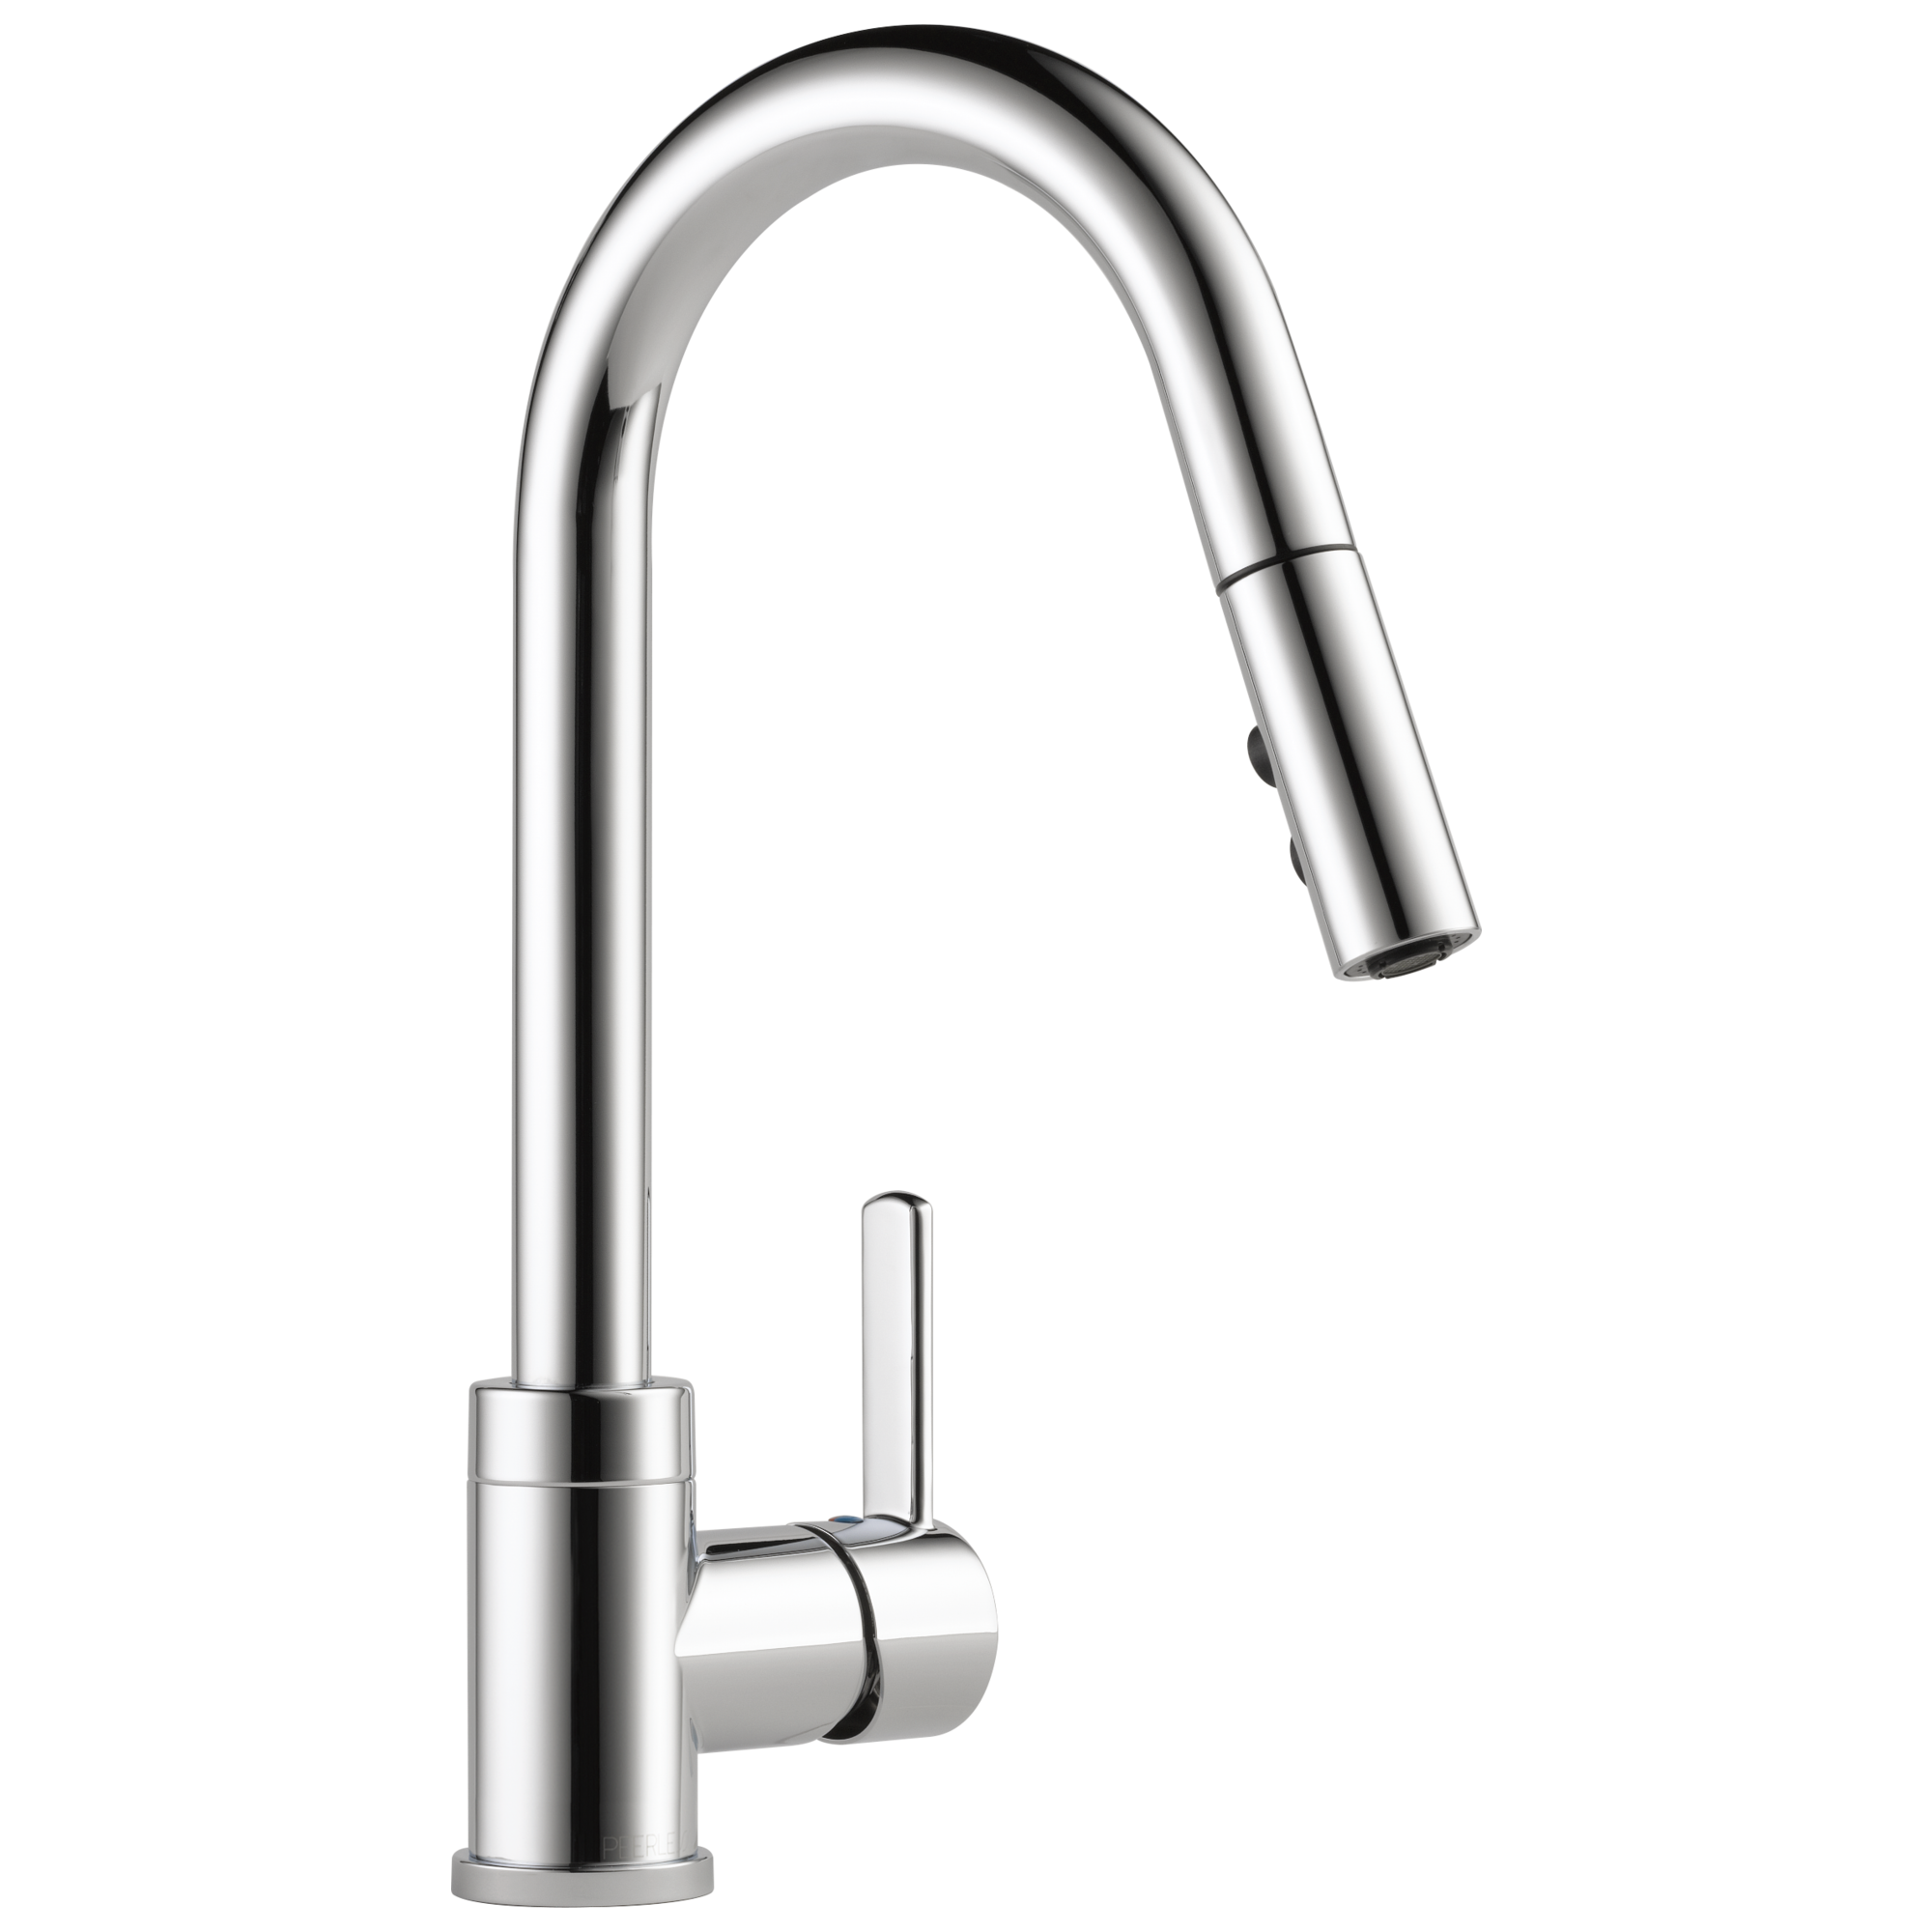 replacement shower ideas decoration of low lowes for decor fauce kitchen flow modern faucets sink home remarkable faucet moen mount wall depot design